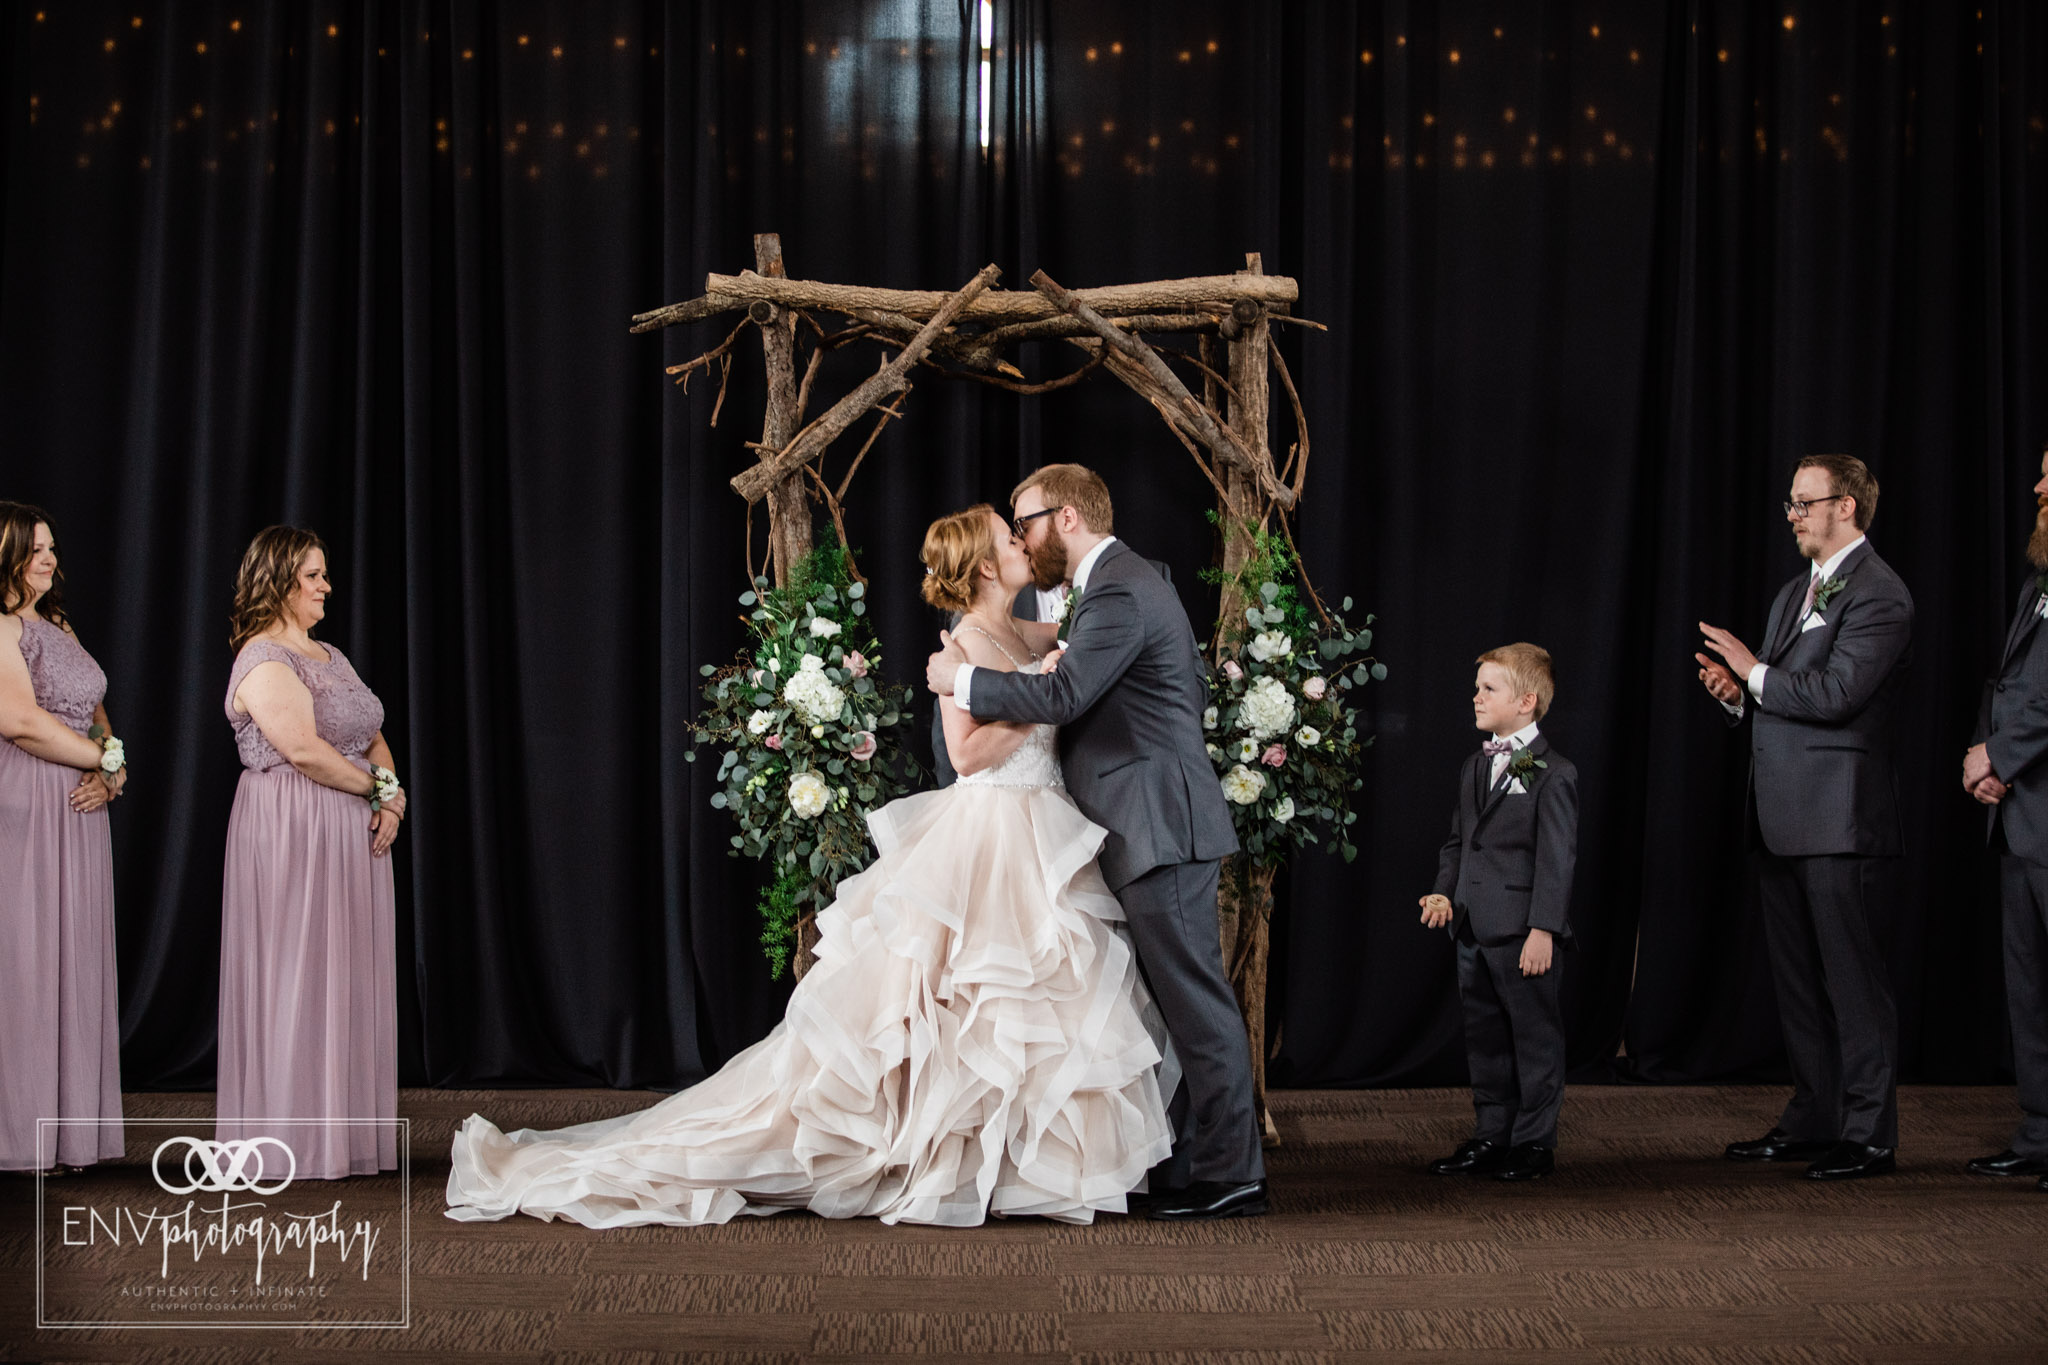 mount vernon columbus ohio irongate equestrian center wedding photographer (47).jpg